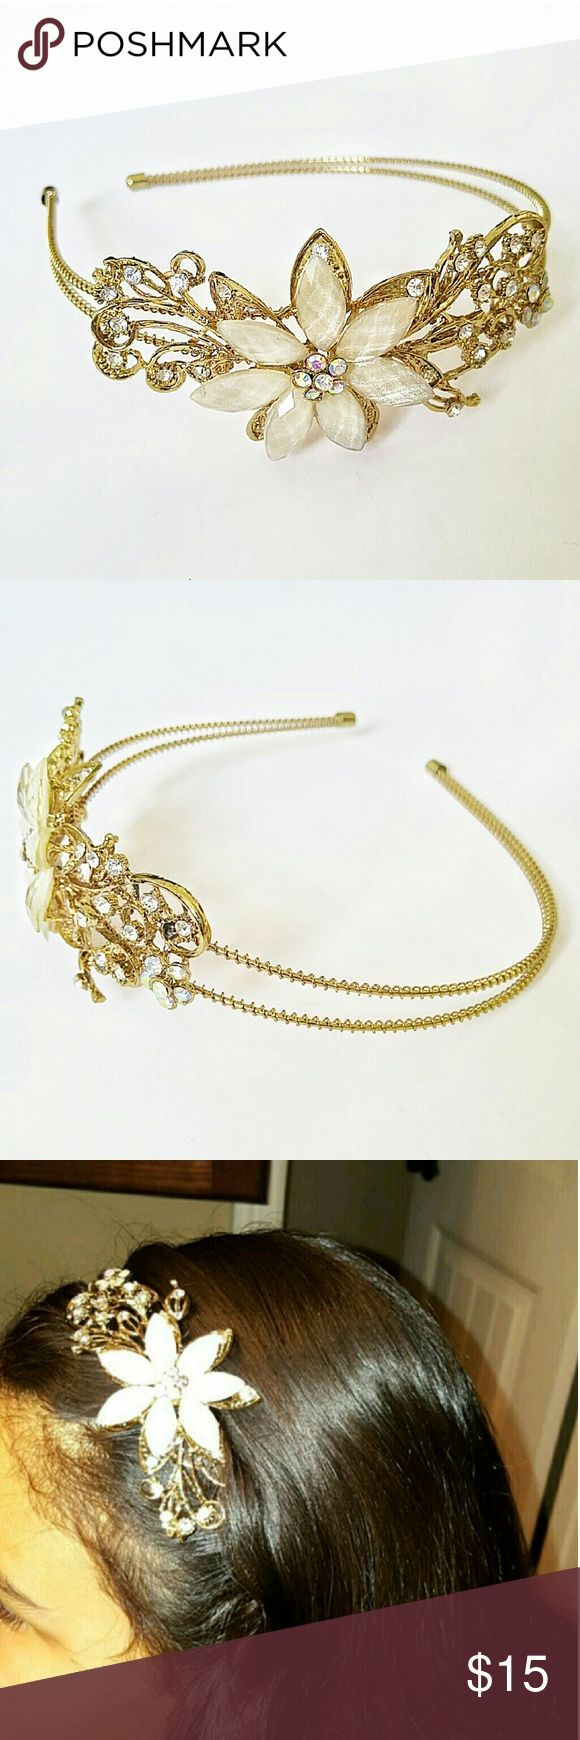 Rhinestone Floral Embellished Gold Headband Breathtaking headpiece! Can be worn for any formal event, date, wedding, bridesmaid as a beautiful finishing touch for your fabulous hair!   Double wrapped wire. Rhinestone scroll accents. Flower centerpiece adorned with ivory faceted stones with a hint of glitter.   Brand New! Never Worn! Accessories Hair Accessories